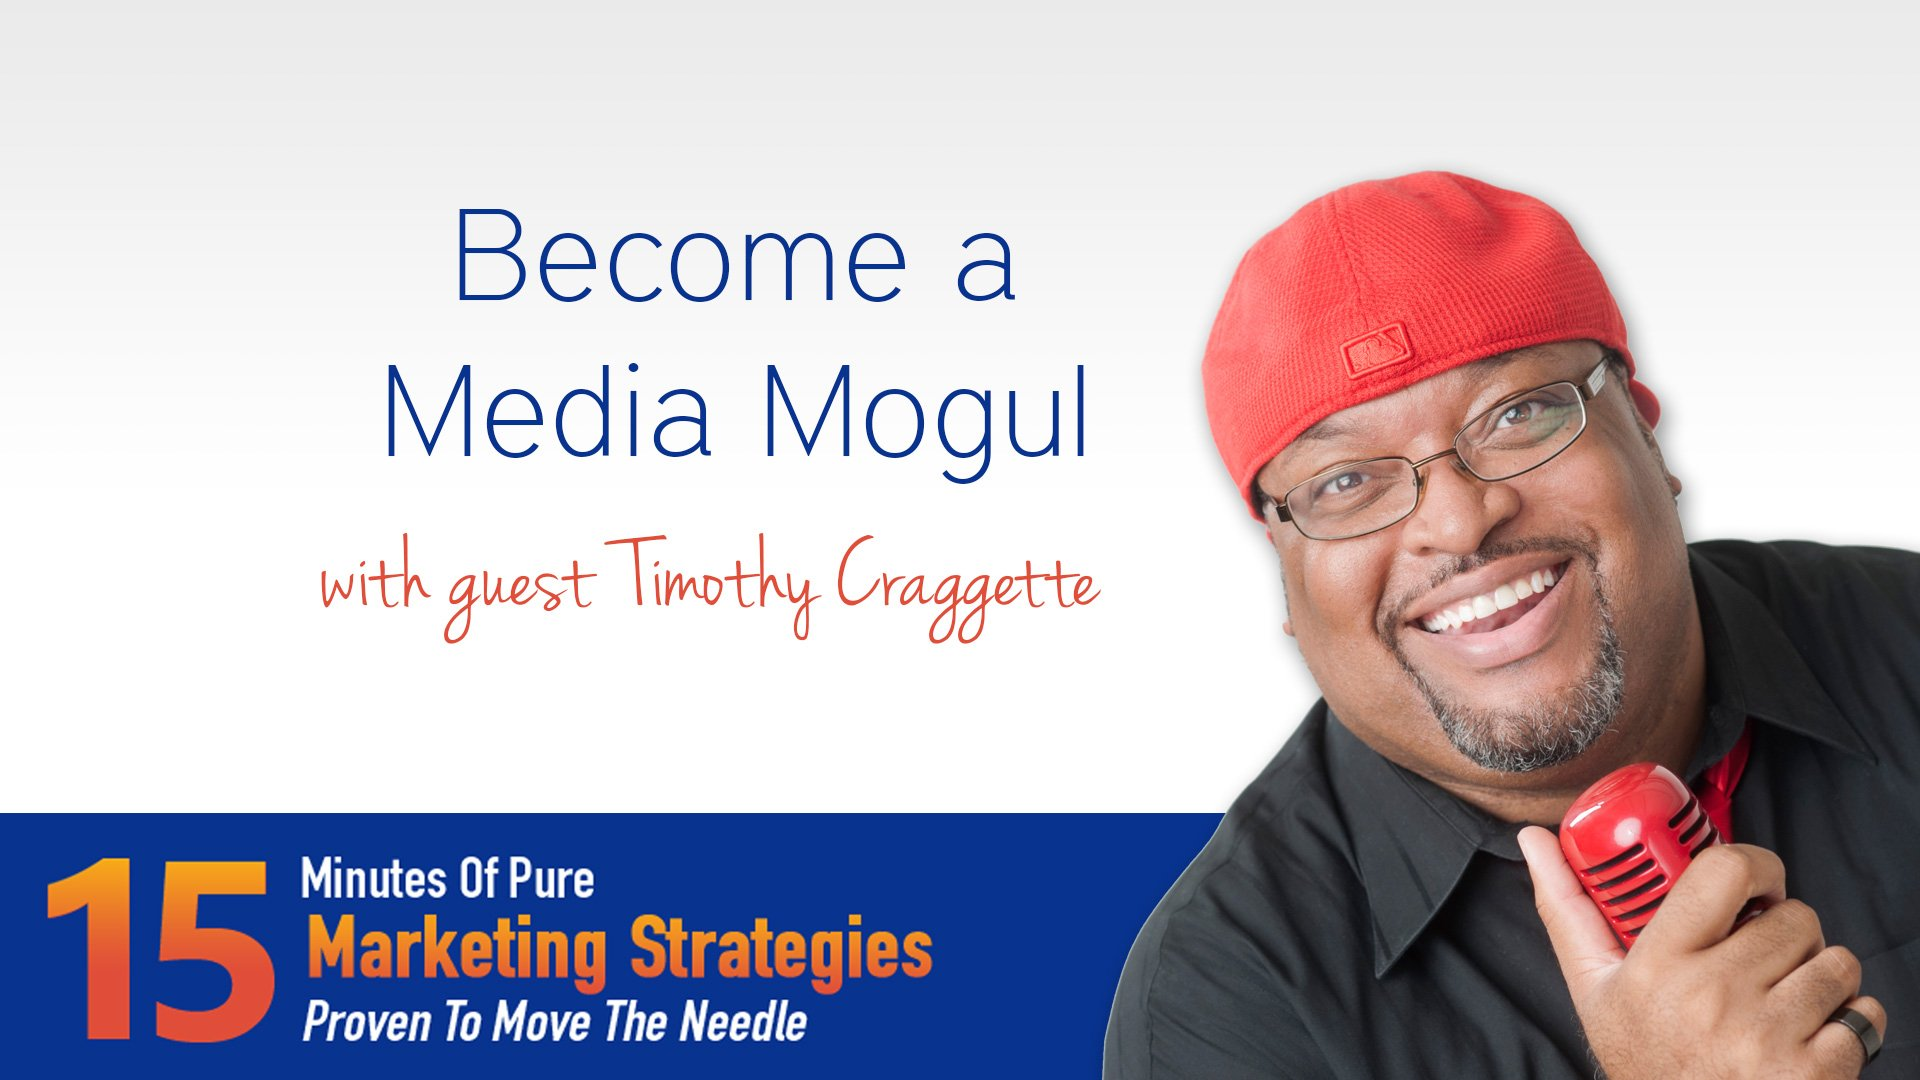 Become a media mogul